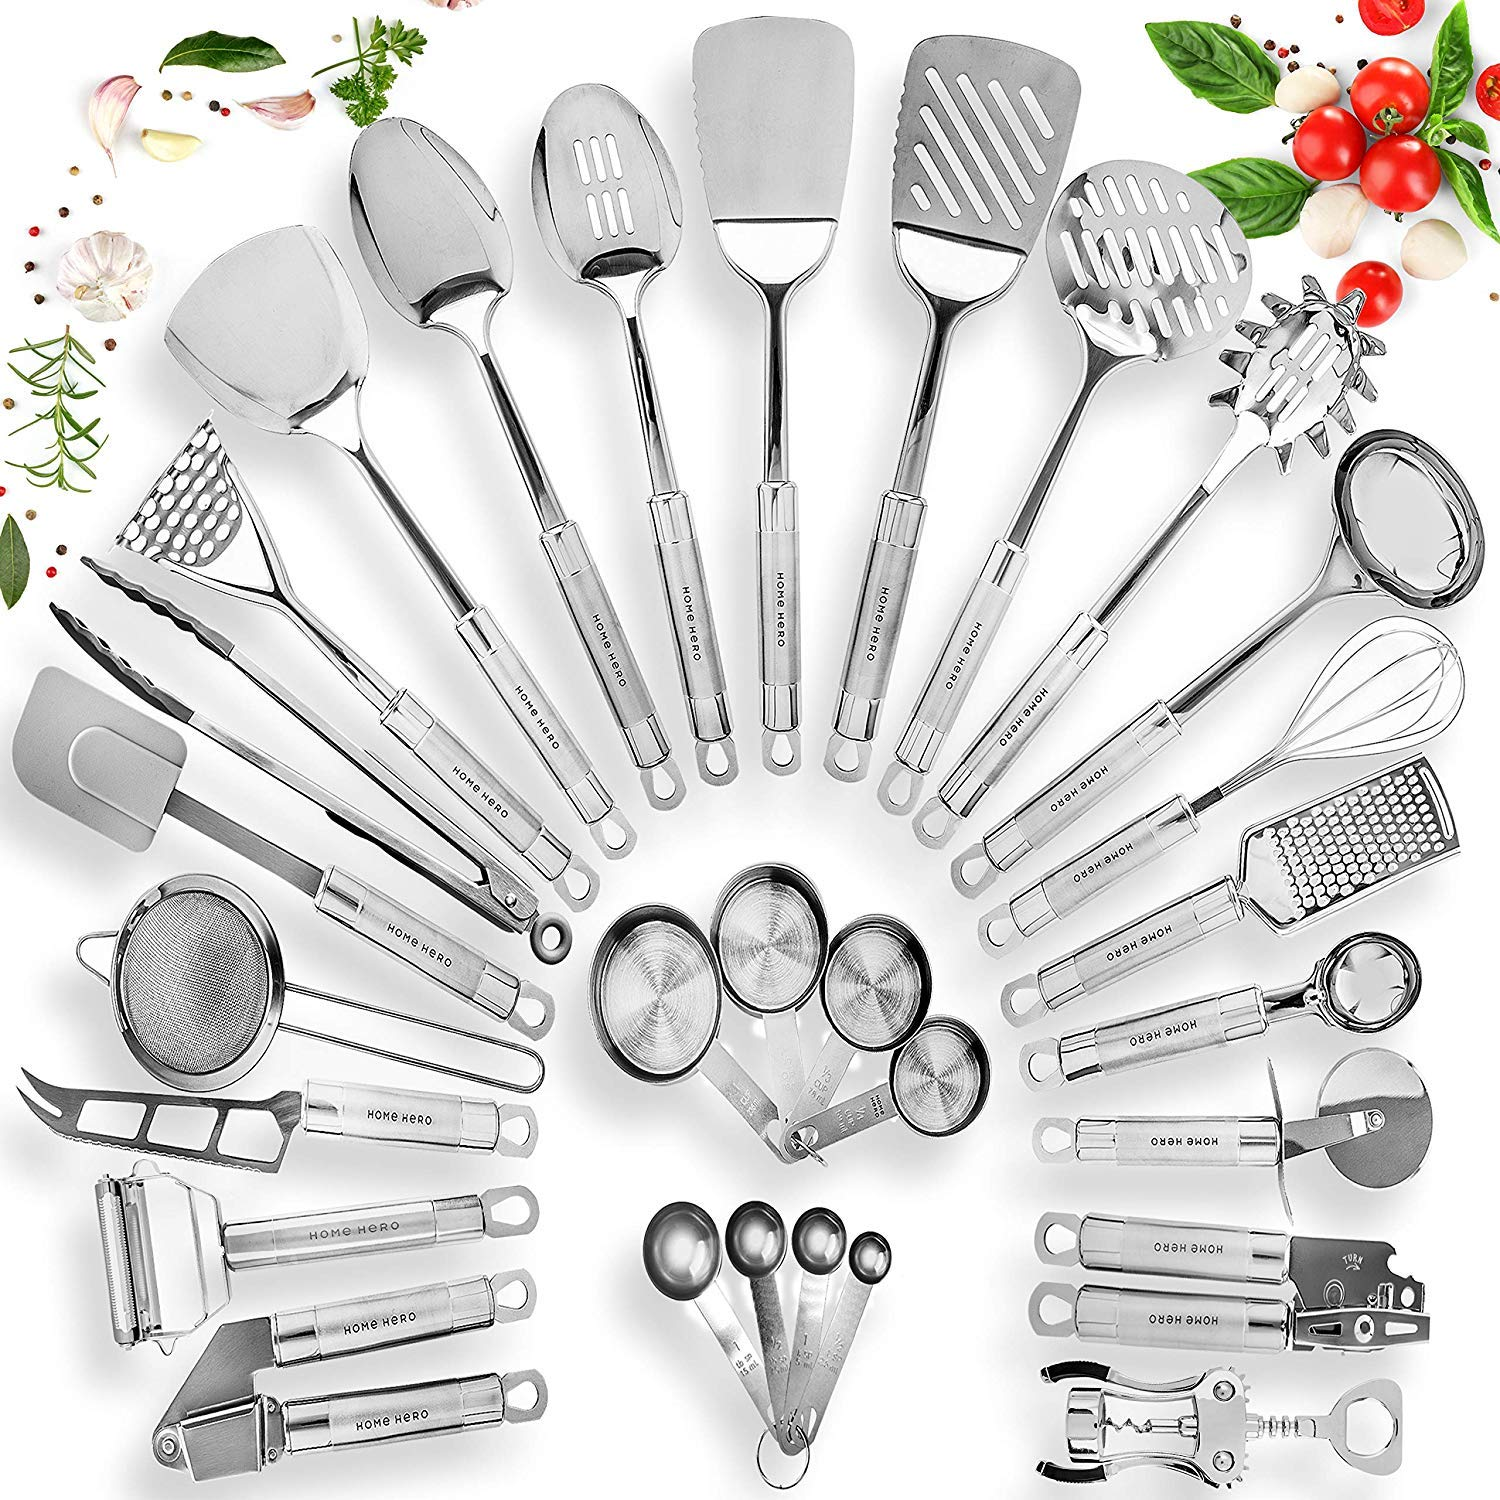 Home Hero Stainless Steel Kitchen Utensil Set - 29 Cooking Utensils - Nonstick Kitchen Utensils Cookware Set with Spatula - Best Kitchen Gadgets Kitchen Tool Set Gift by Home Hero